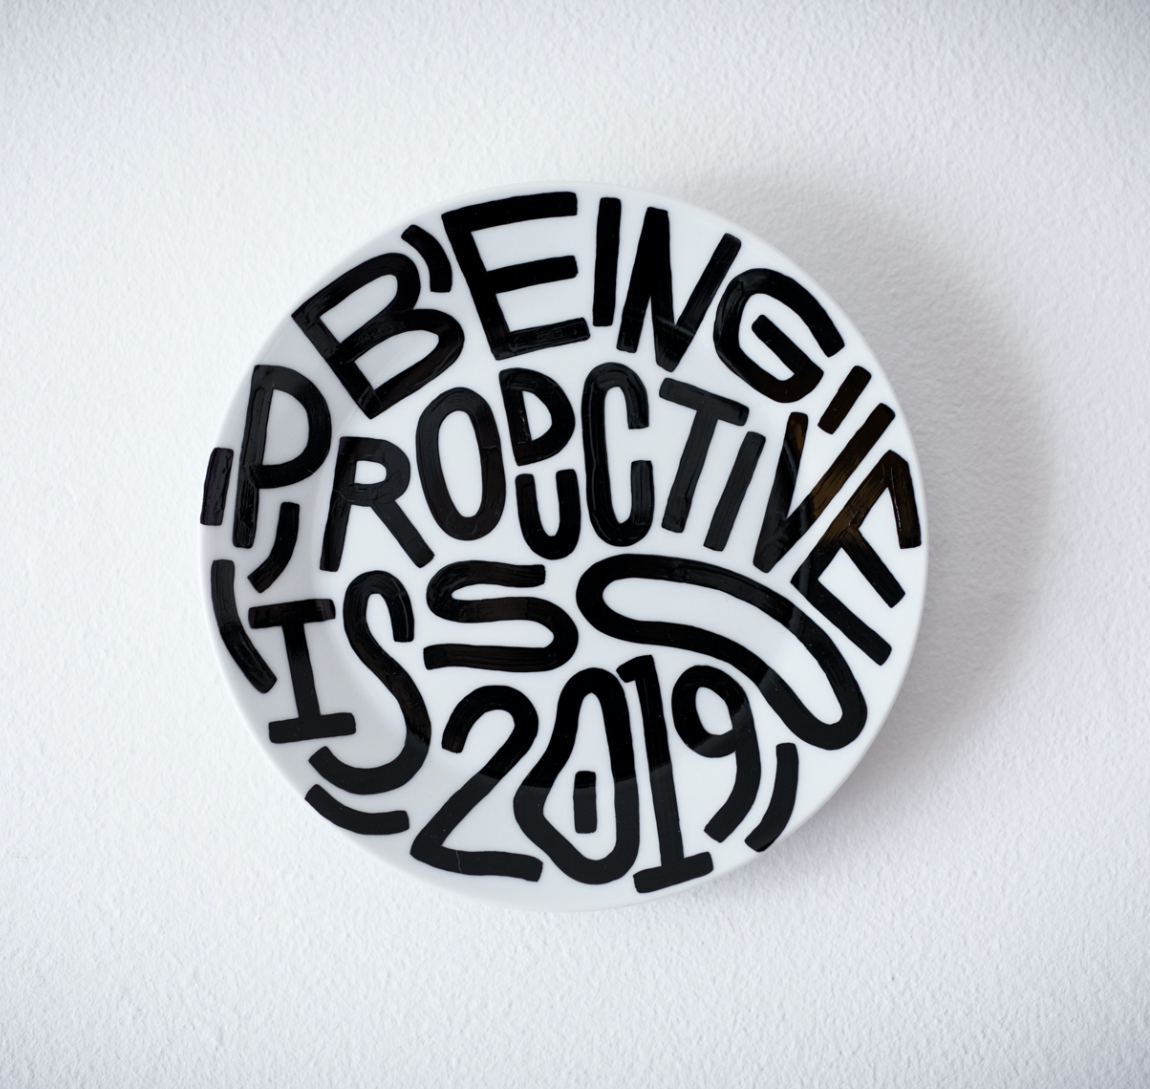 Image of Being productive is so 2019